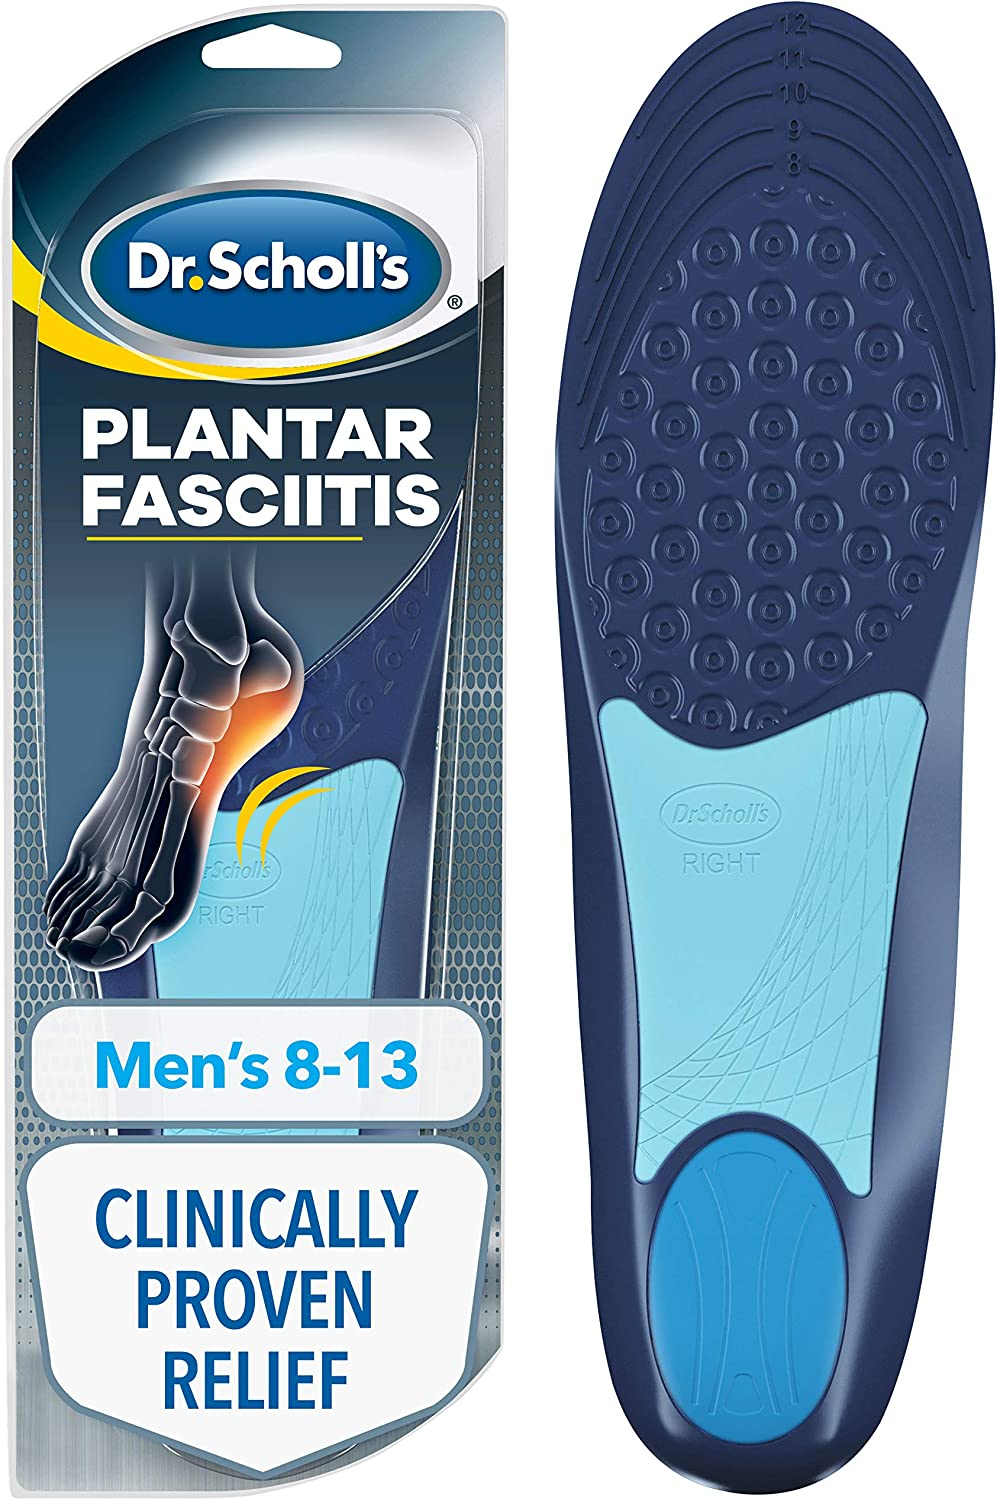 Dr. Scholl's PLANTAR FASCIITIS Pain Relief Orthotics // Clinically Proven Relief and Prevention of Plantar Fasciitis Pain (for Men's 8-13, also available for Women's 6-10): Health & Personal Care